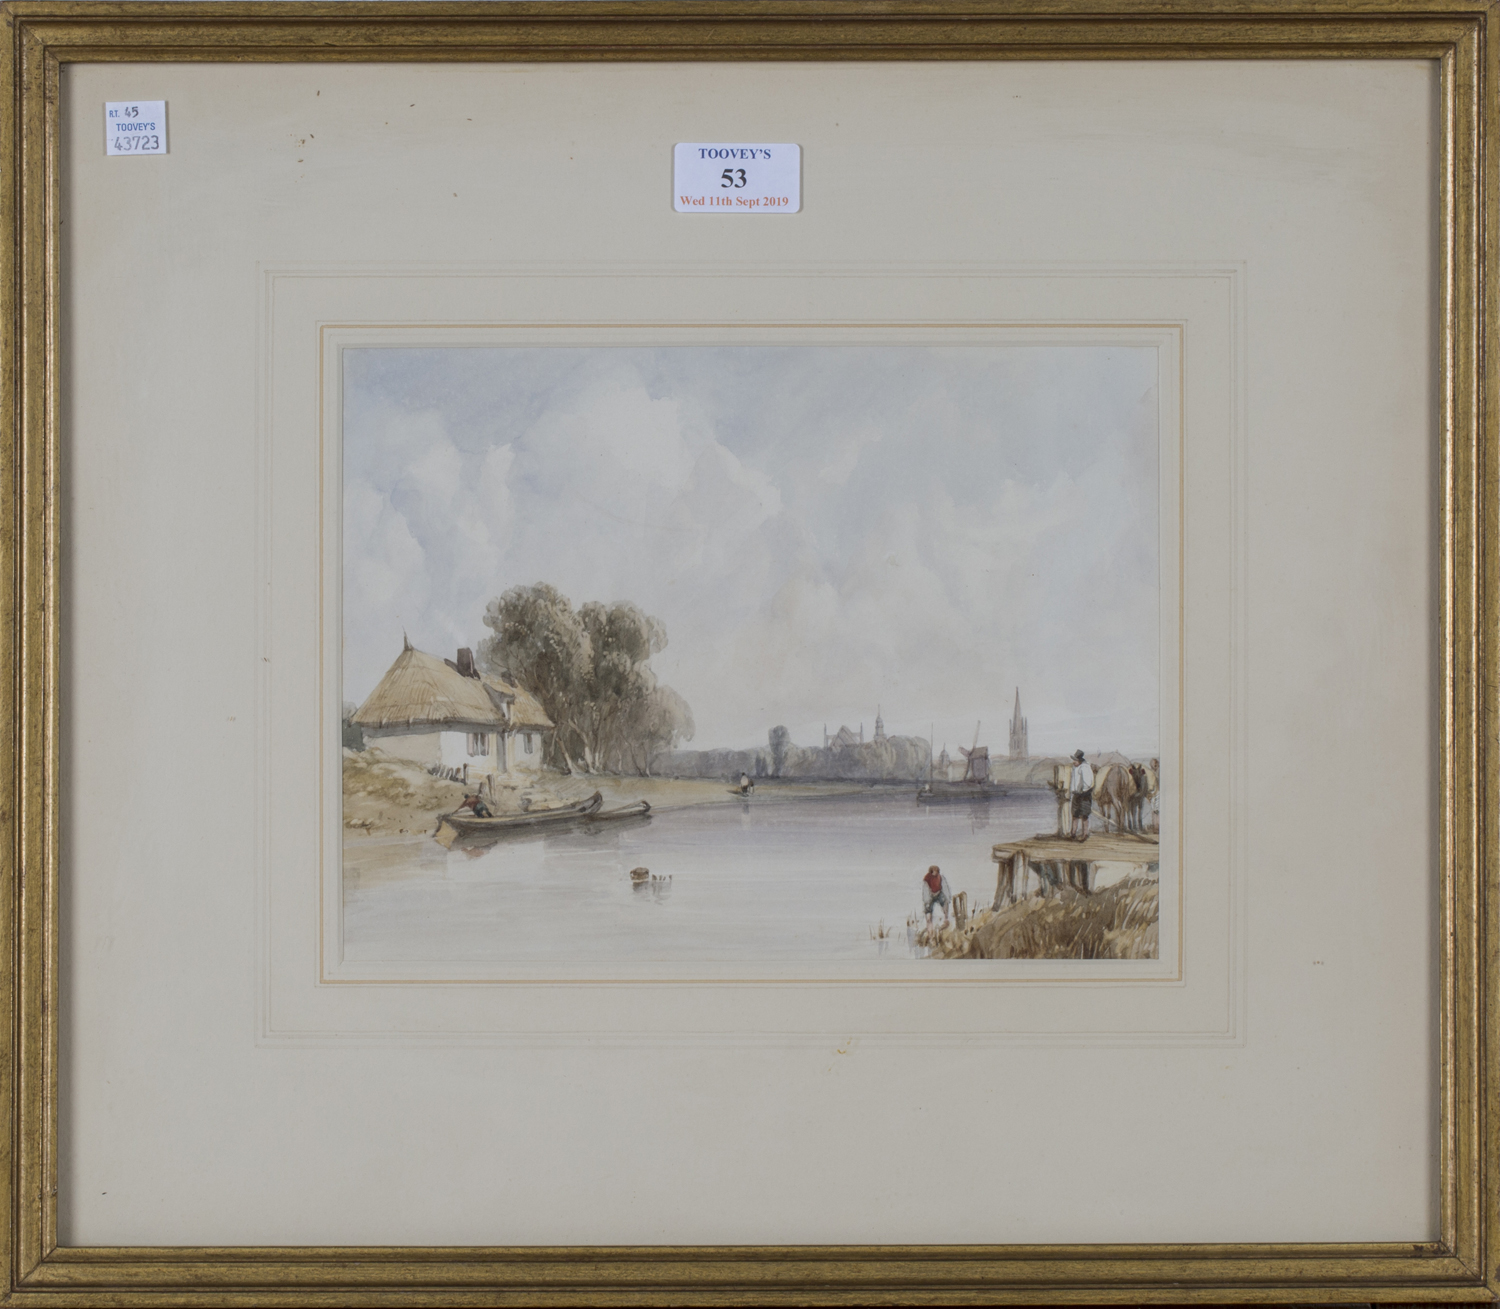 Lot 53 - Attributed to Alfred Gomersal Vickers - 'The Ferry', 19th century watercolour, titled verso, 18.